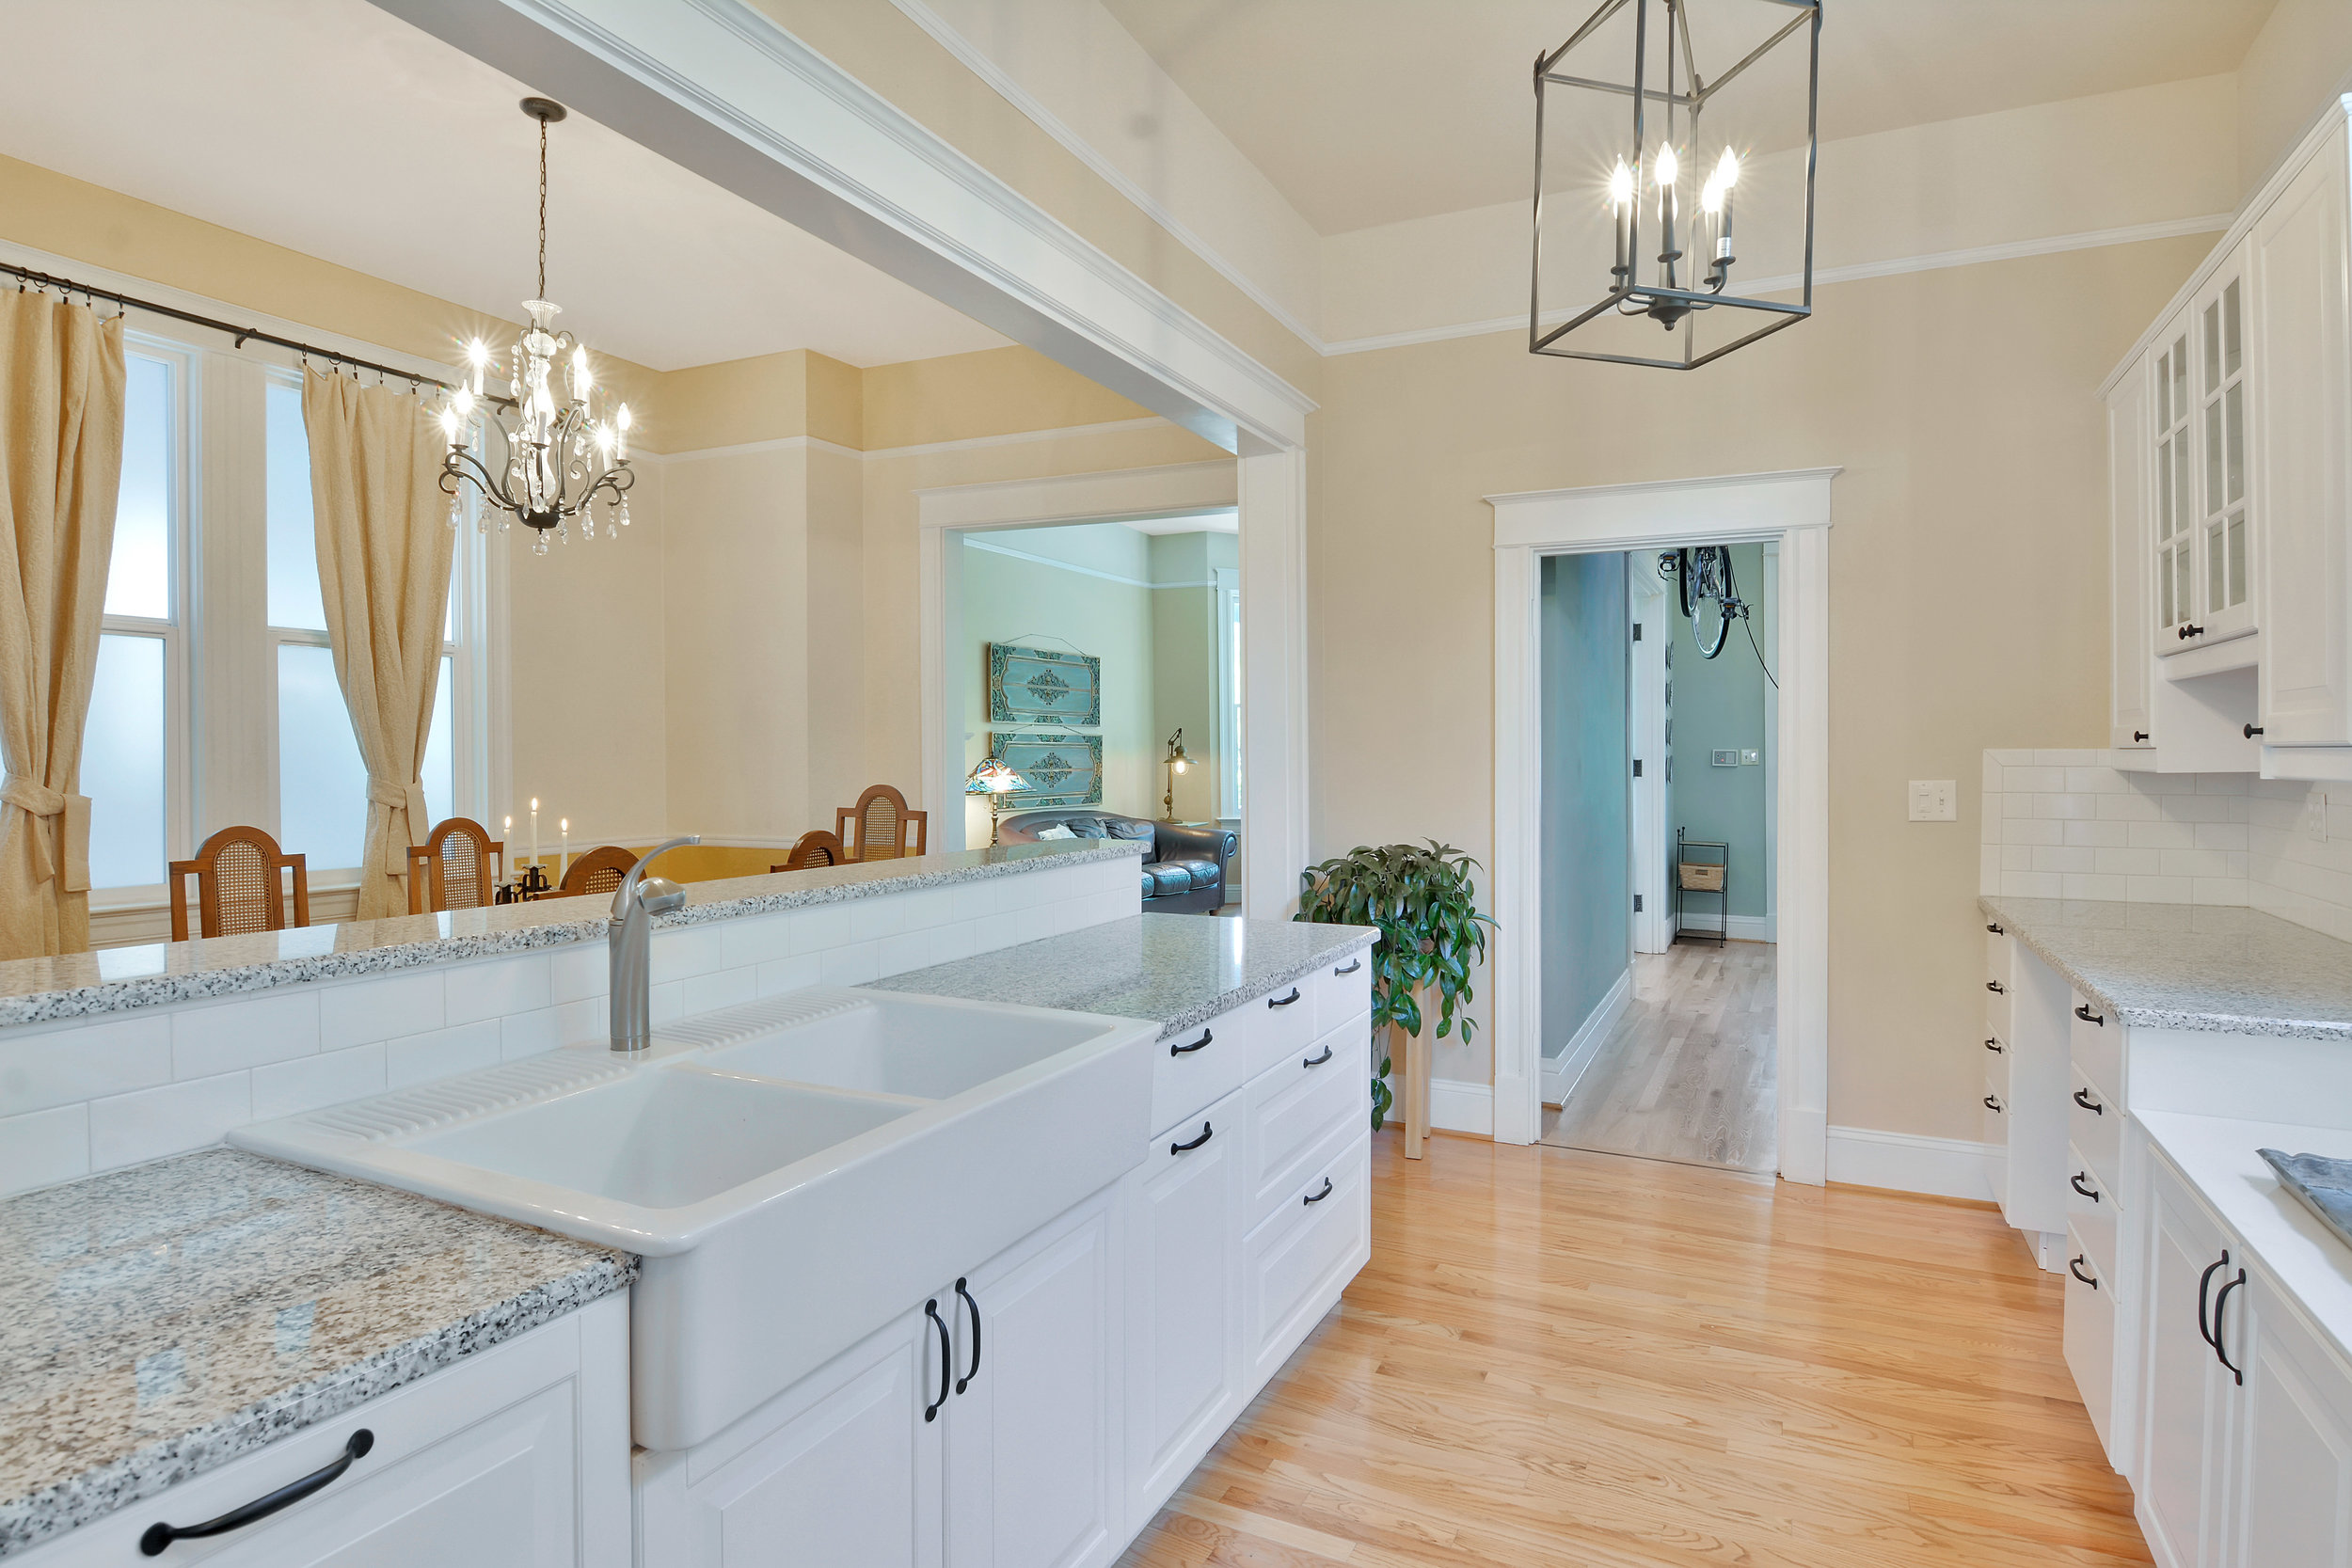 Updated kitchen with farmhouse sink, stone counters, and custom cabinets.